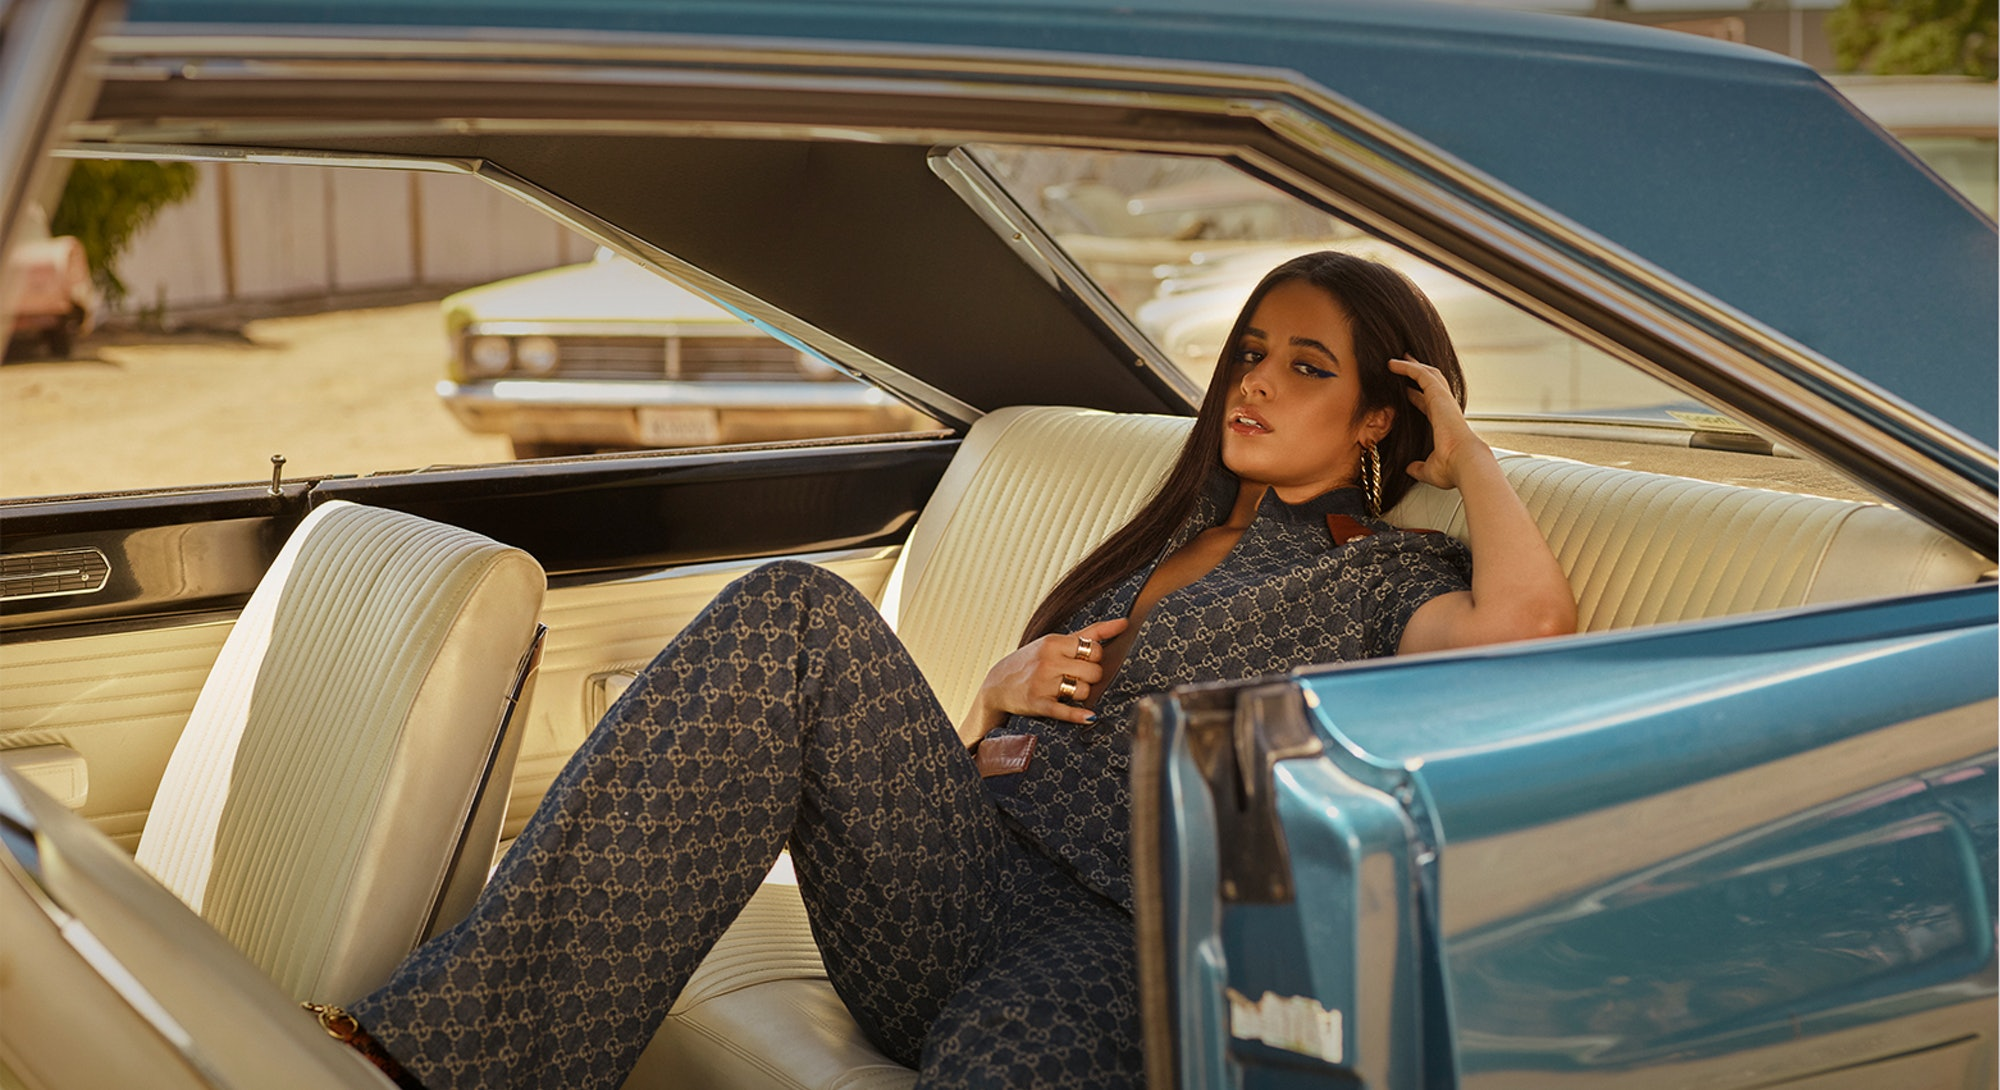 Camila Cabello wears denim Gucci while posing in a car for the cover of Bustle's denim issue.